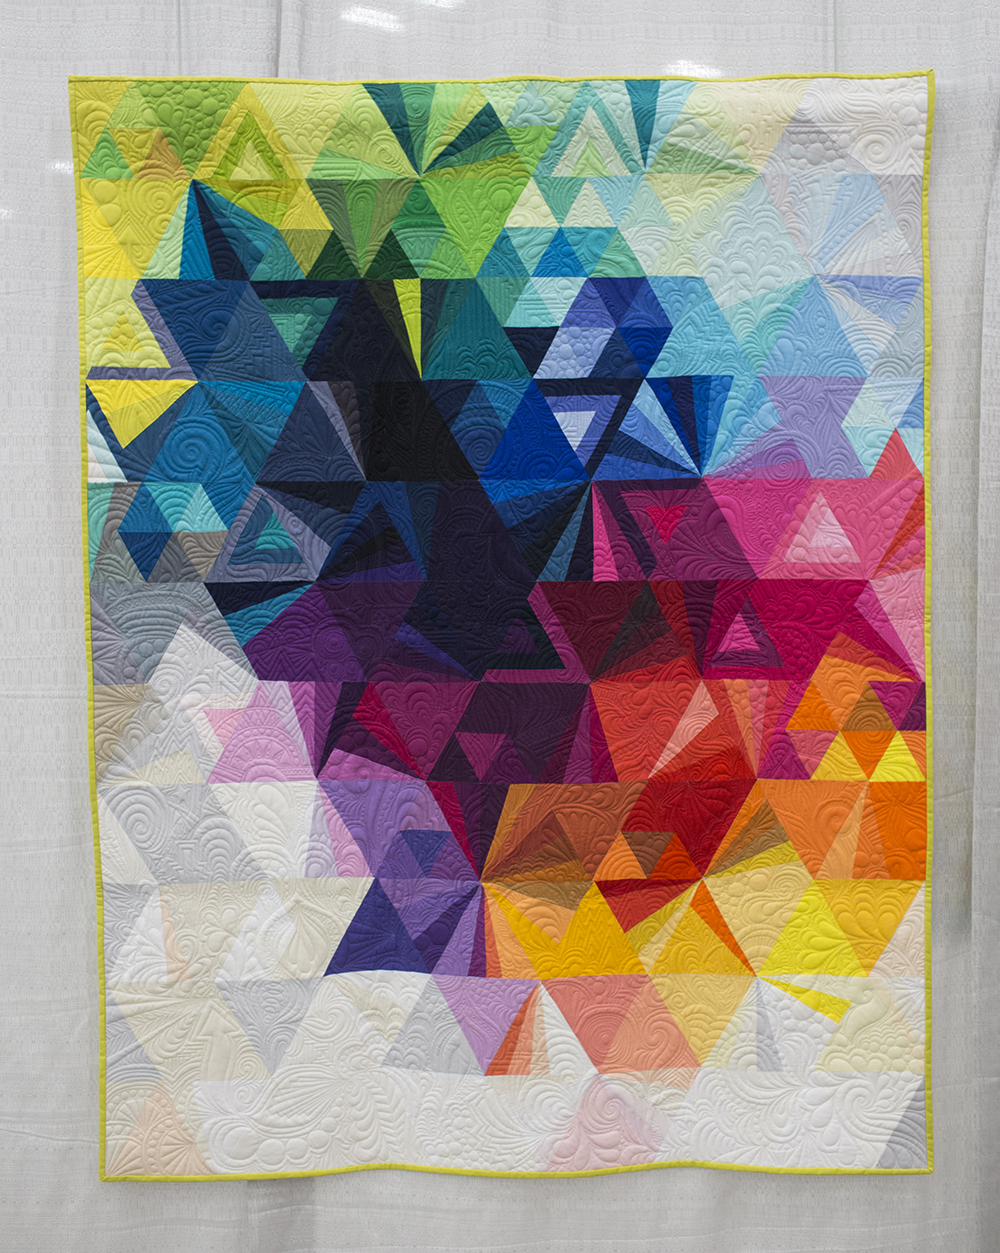 QuiltCon 2015: Tessellation 3 by Nydia Kennley